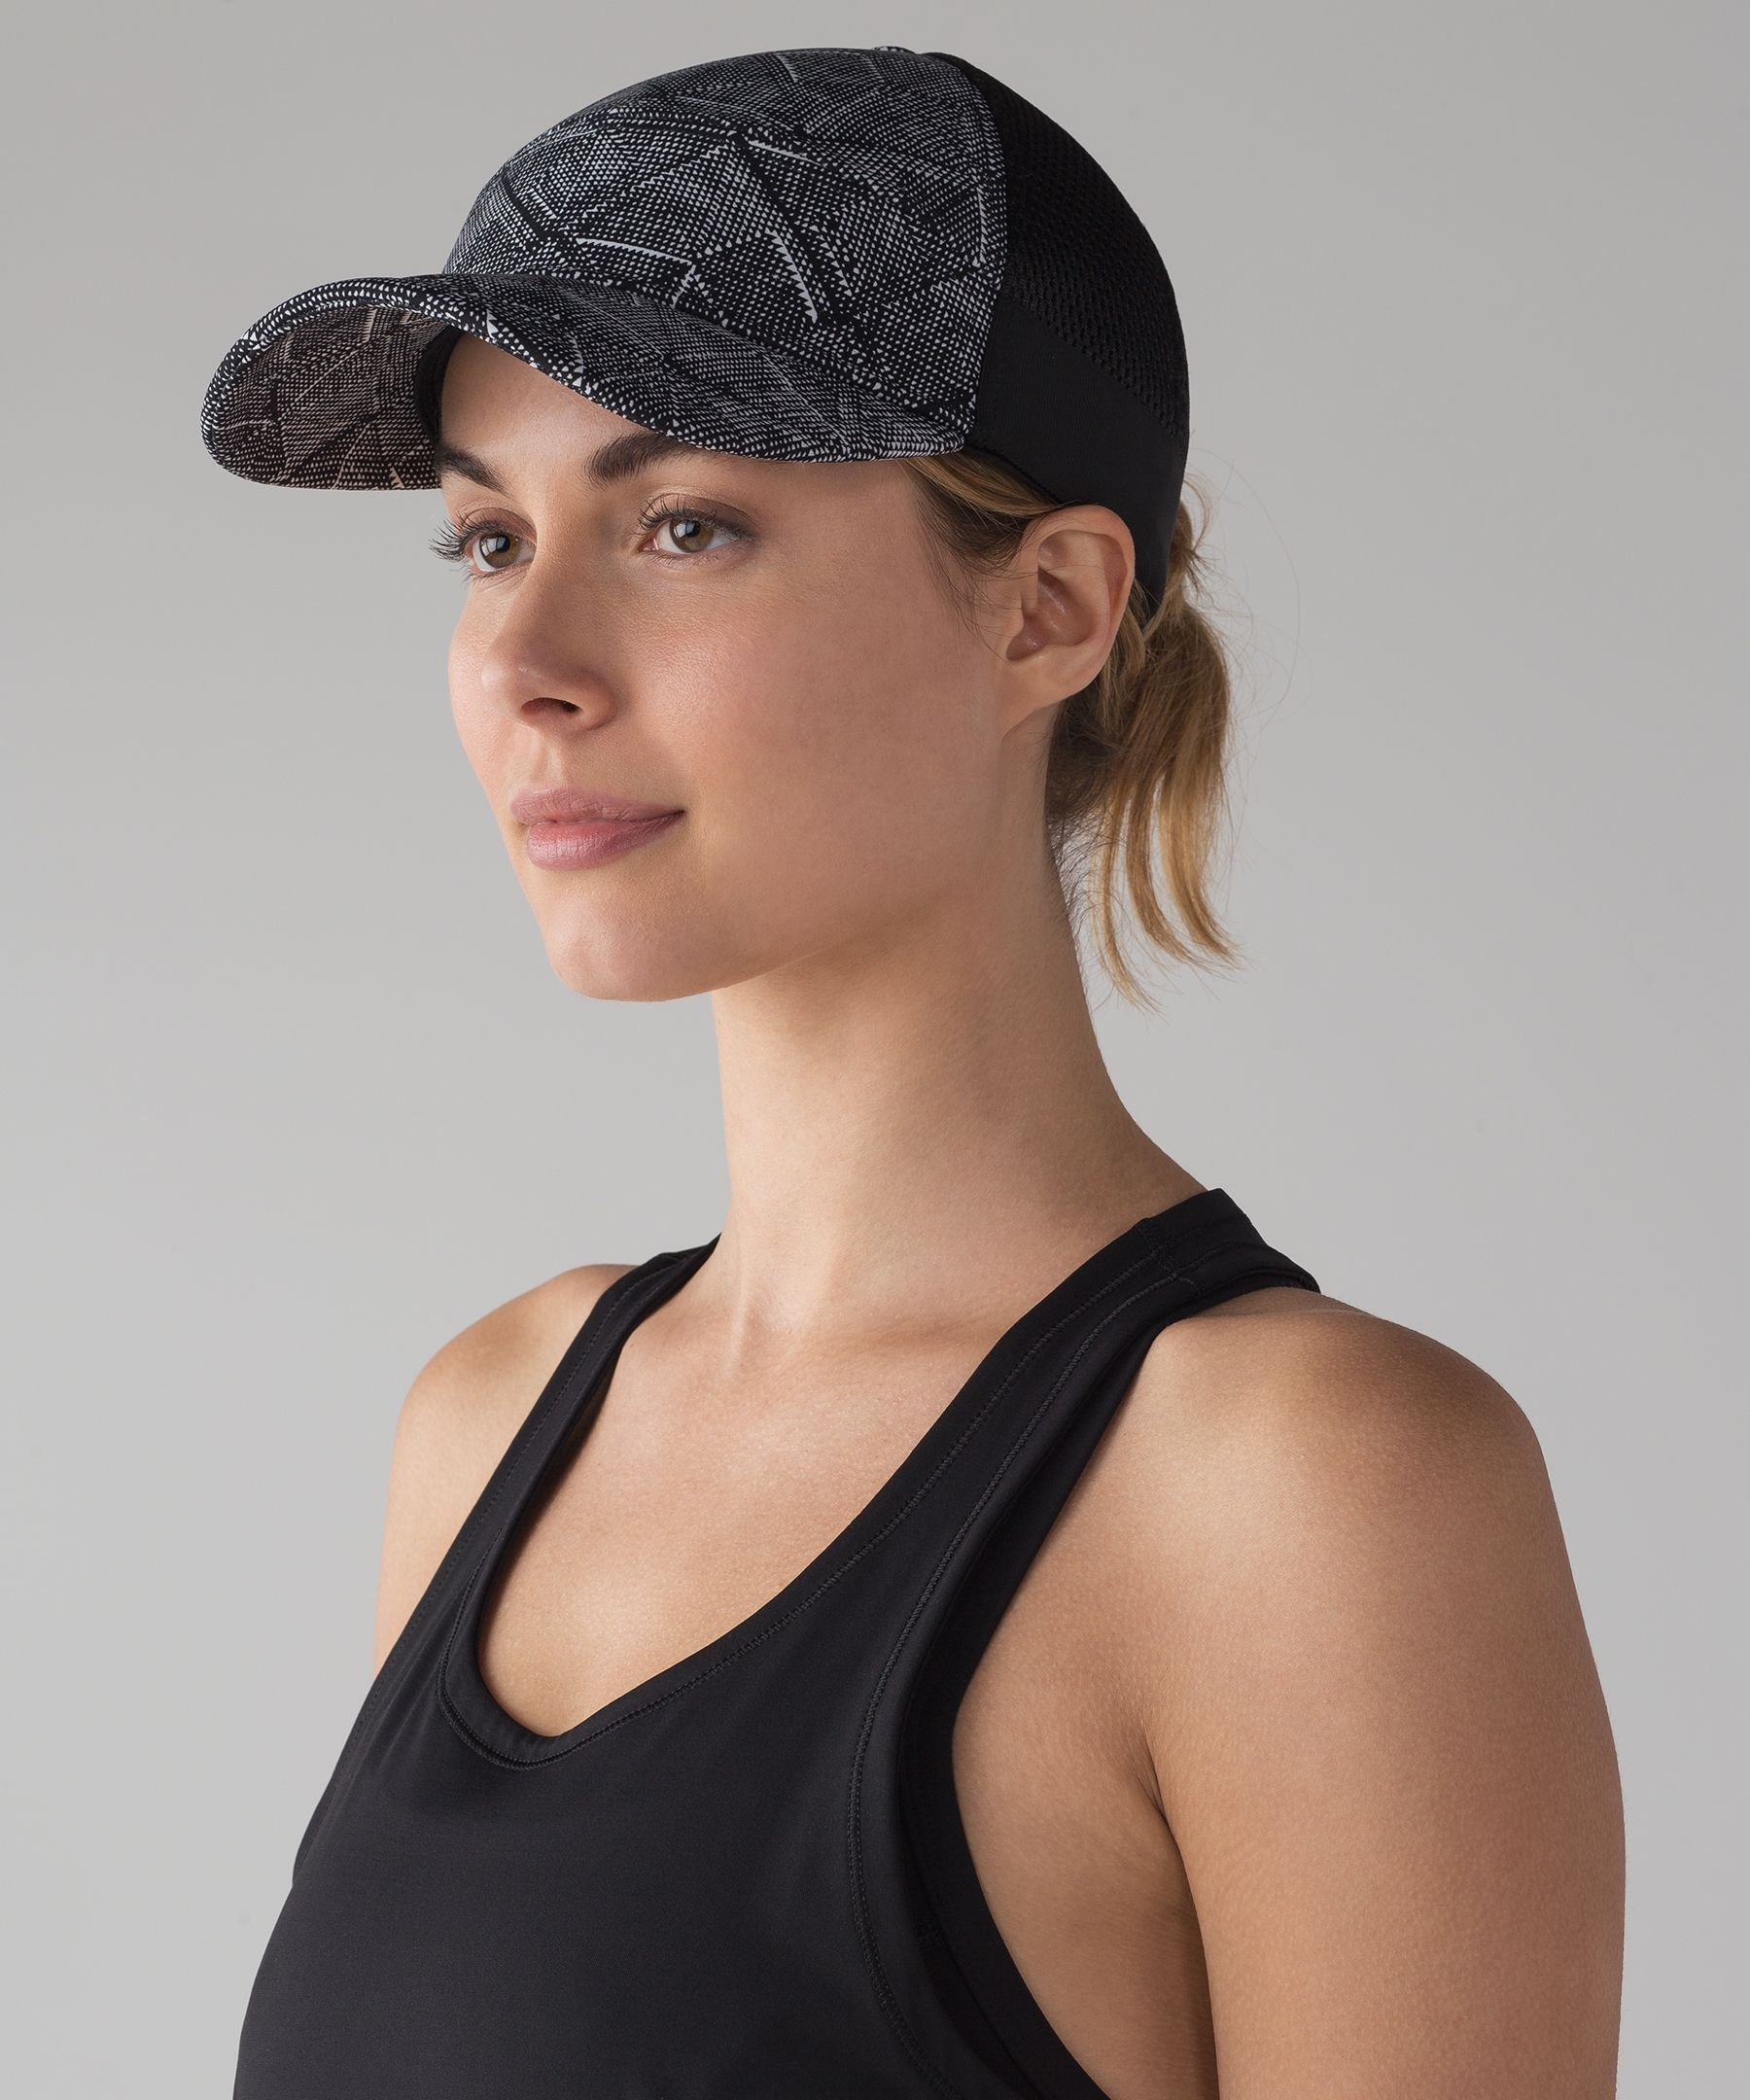 4774f661 Dash & Splash Cap | Products | Hats, Lululemon, Snapback hats